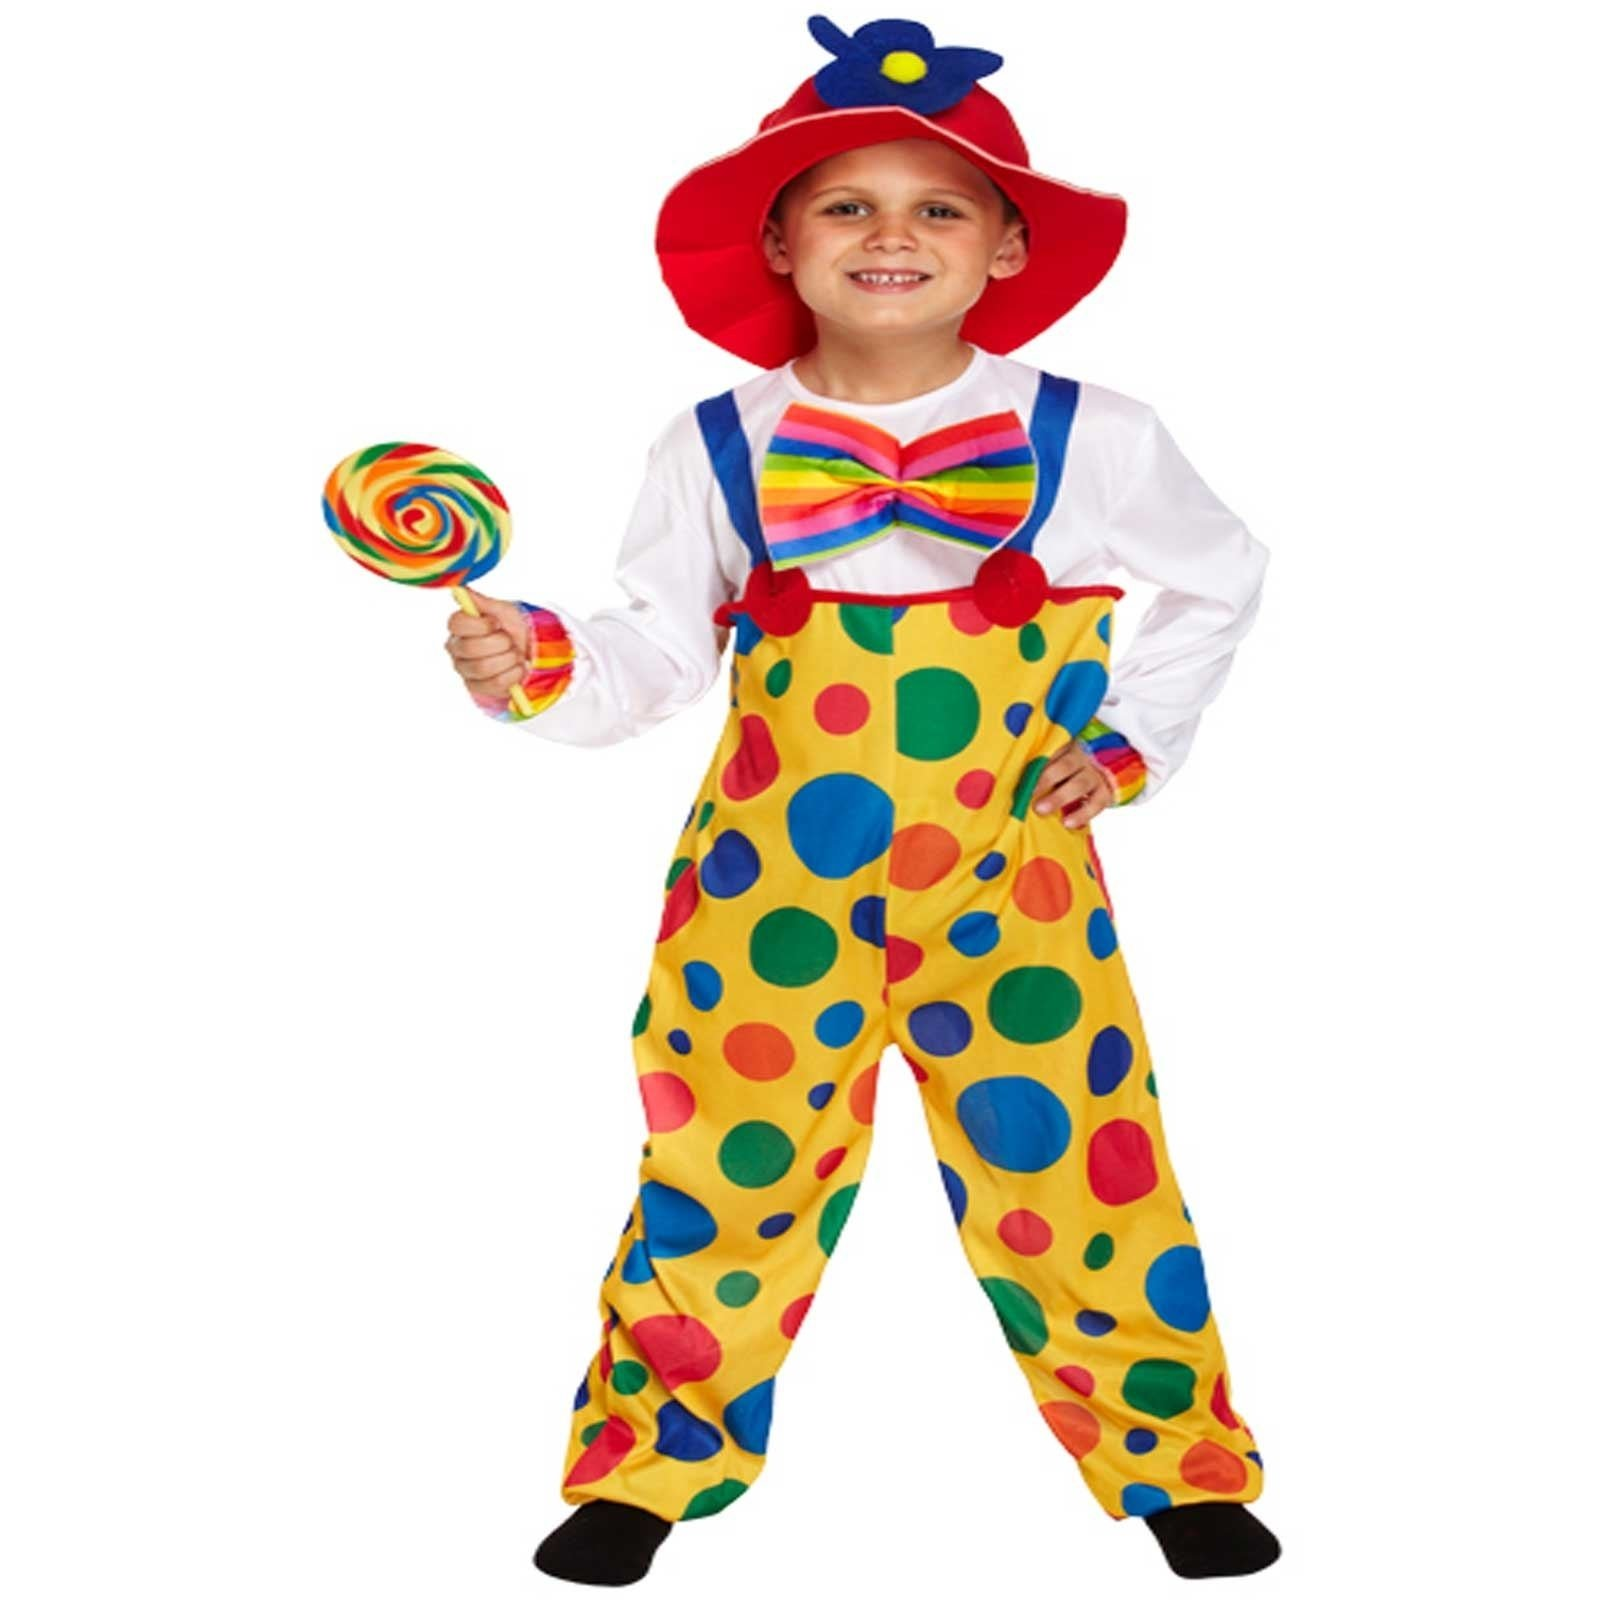 10 Perfect Around The World Party Costume Ideas boys fancy costume party dress kids world book day outfits play